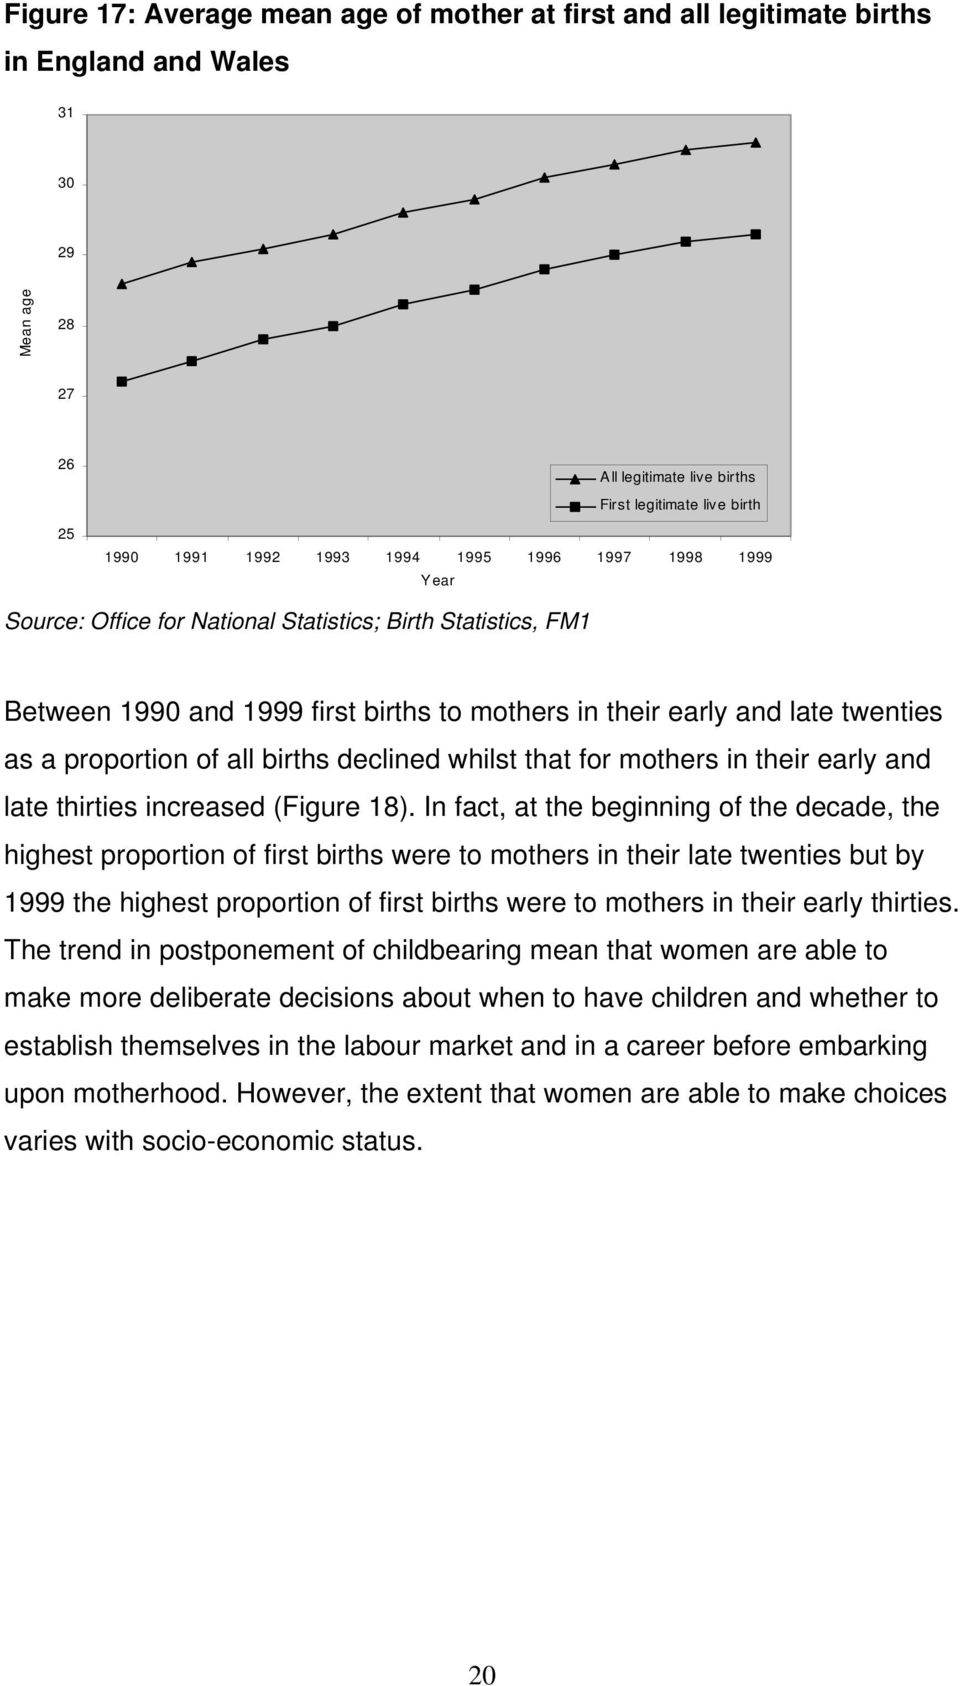 births declined whilst that for mothers in their early and late thirties increased (Figure 18).